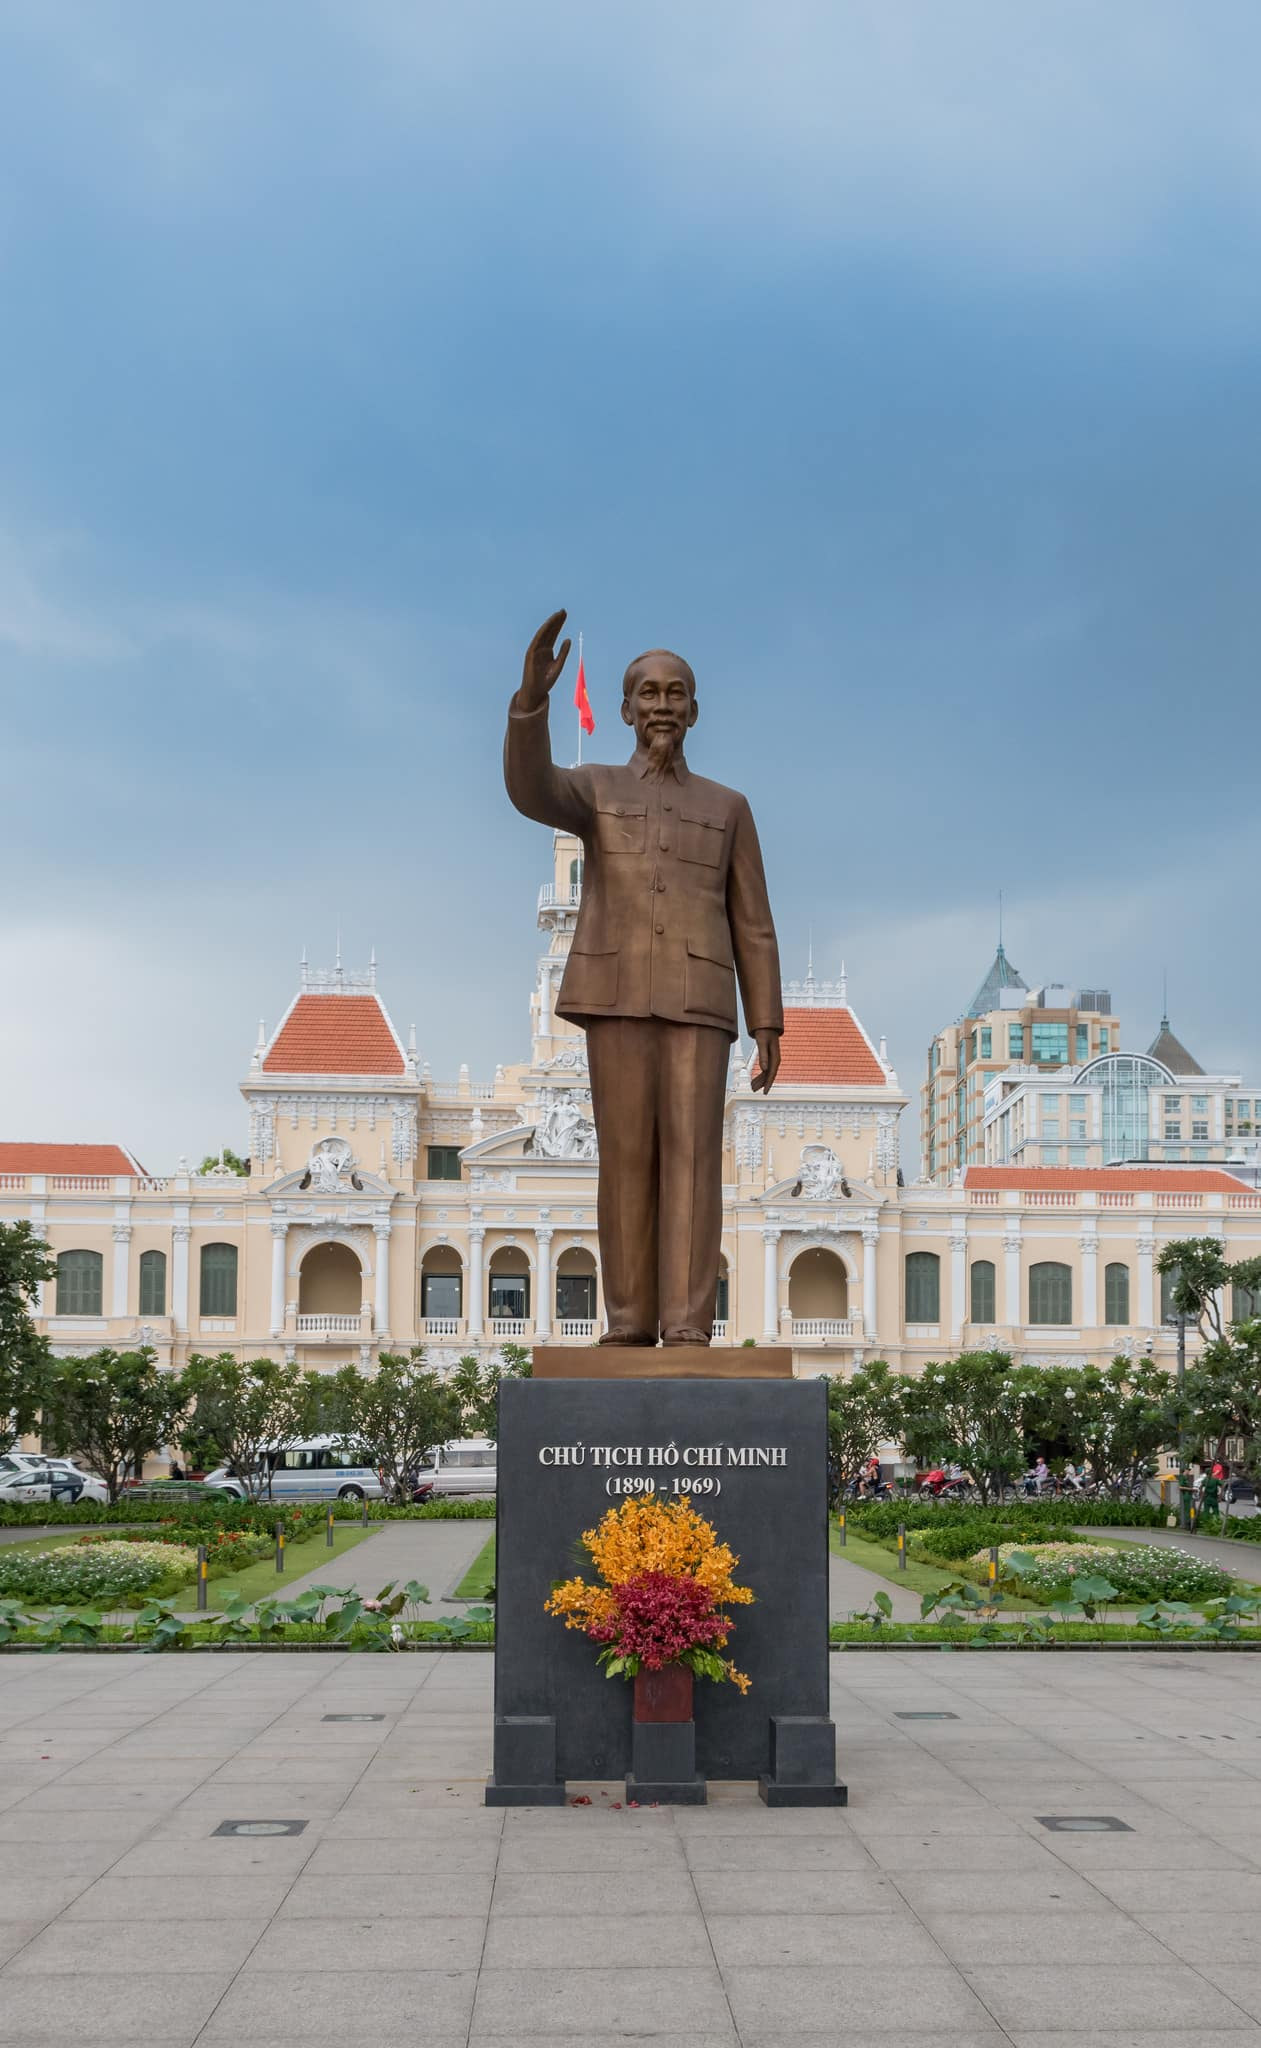 New York to Ho Chi Minh City Vietnam $425 RT Airfares on China Southern (Limited Travel Feb - March 2020)